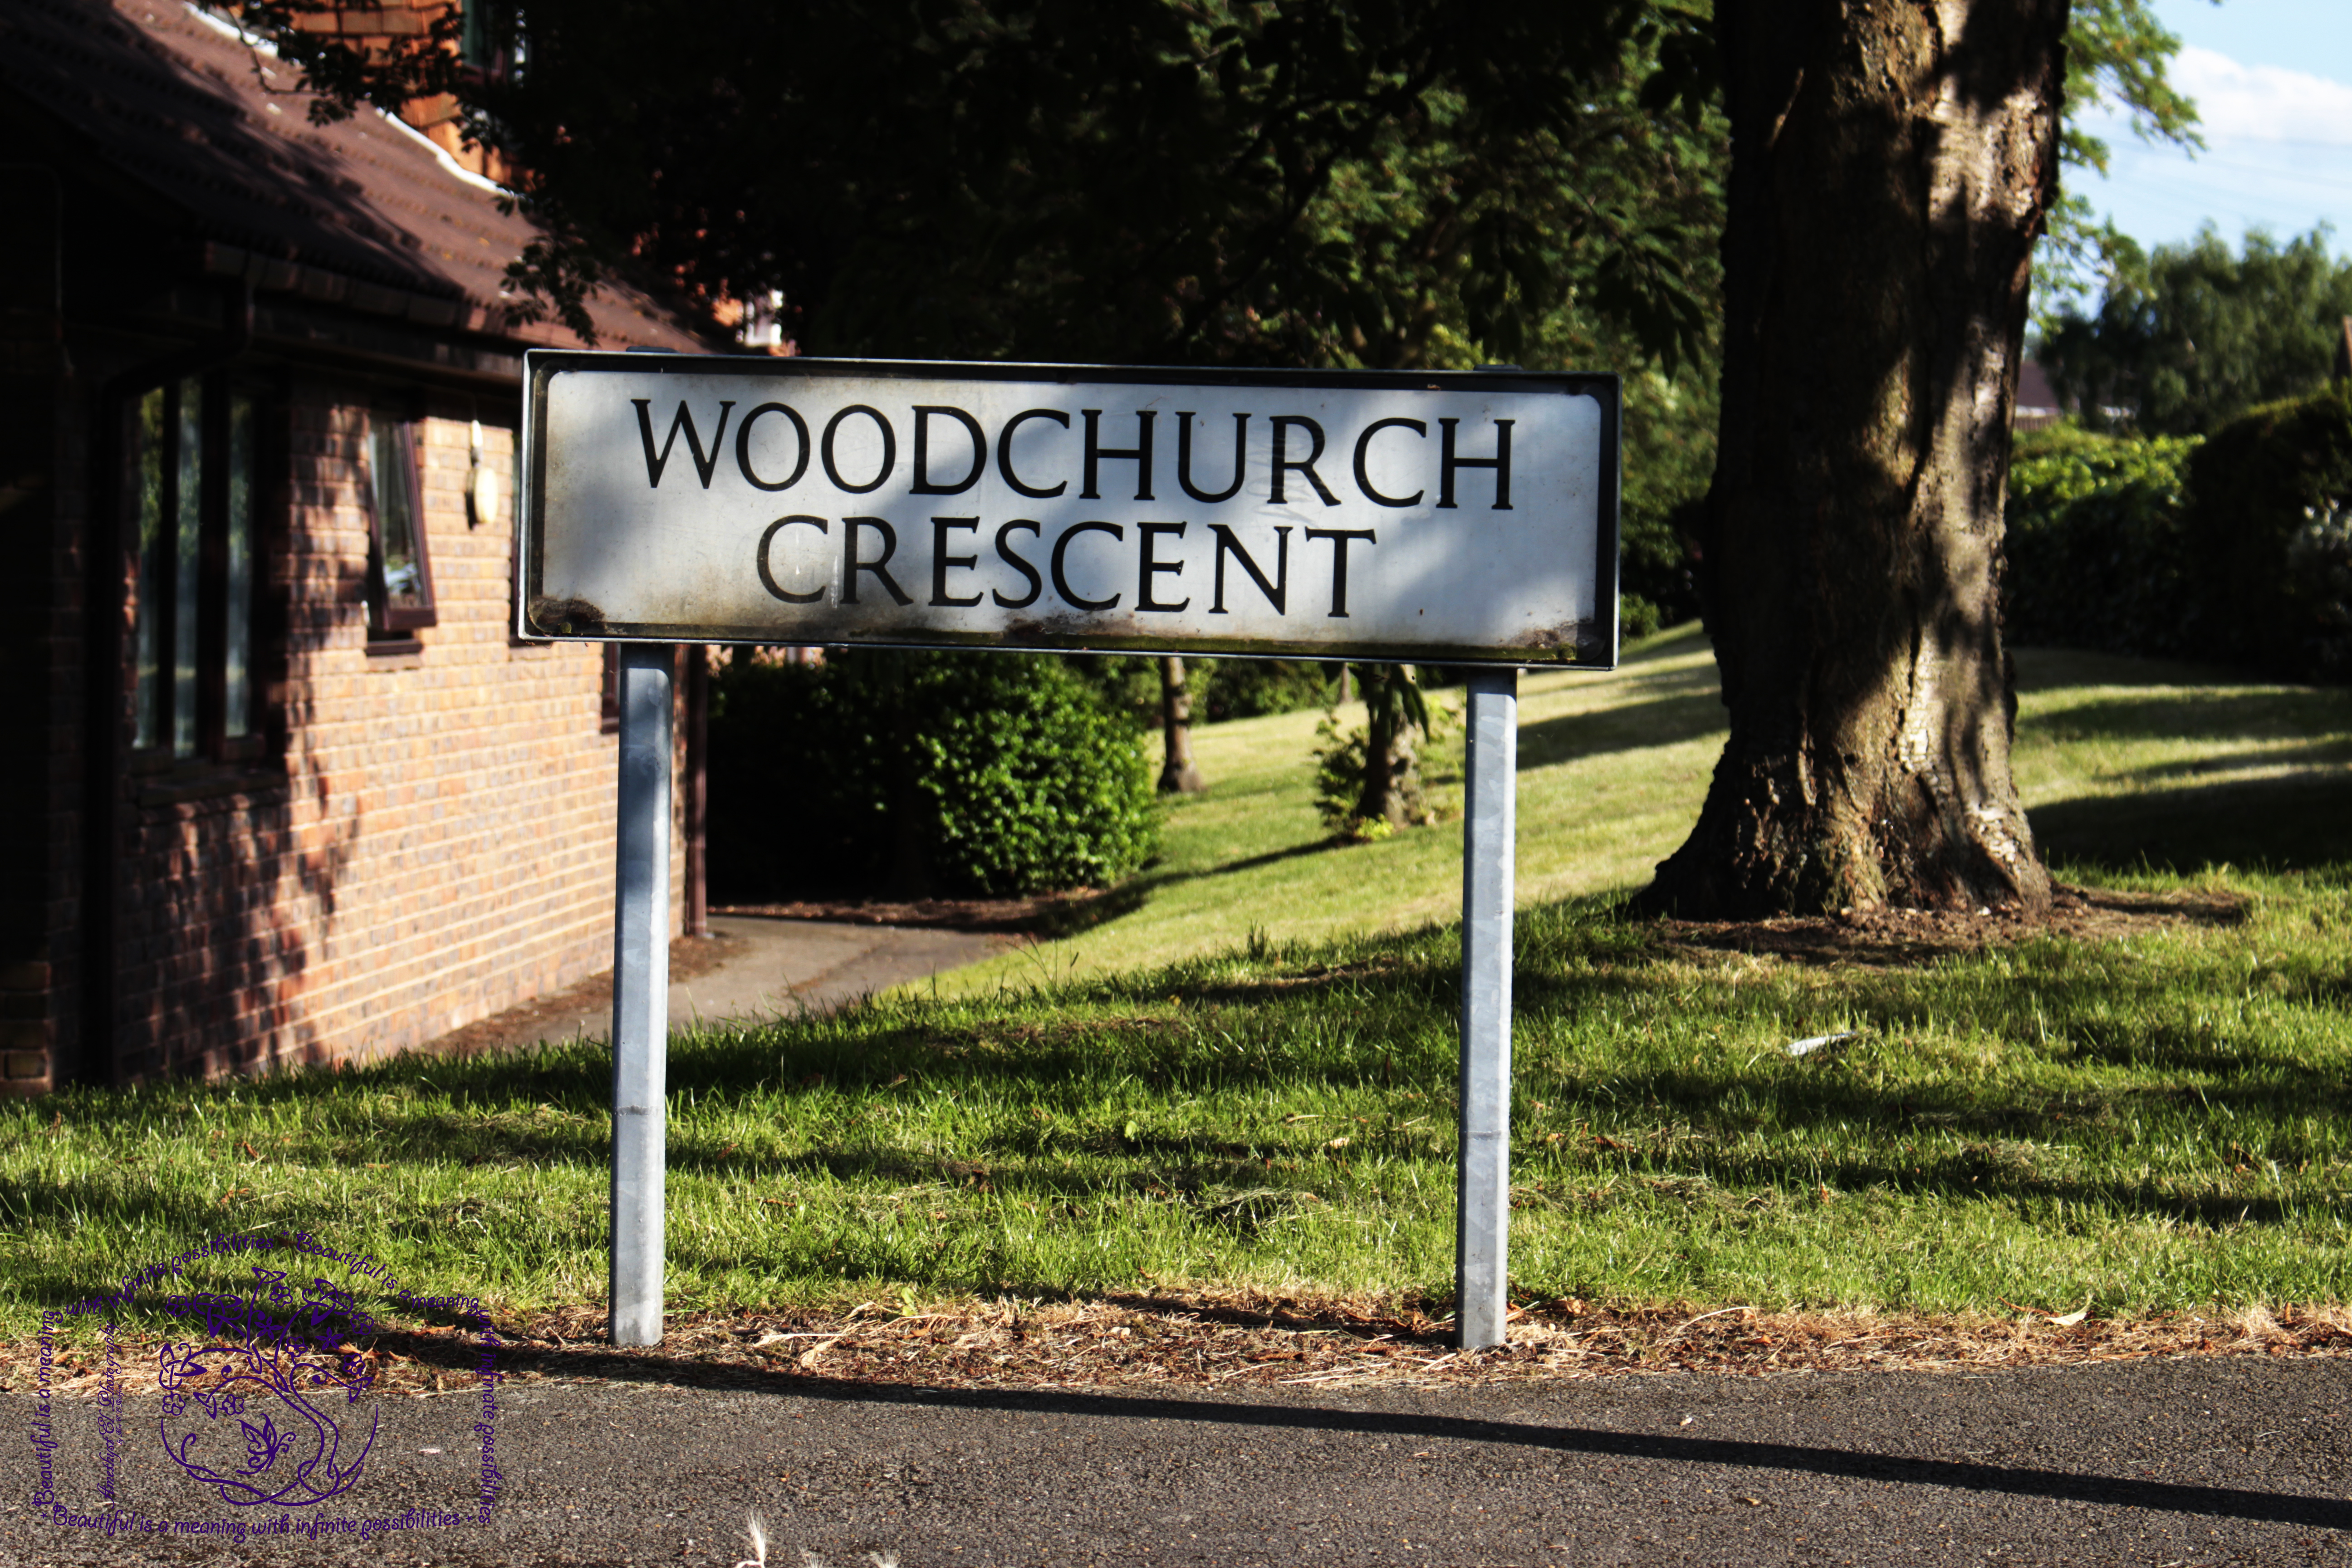 My 1st home town - Woodchurch